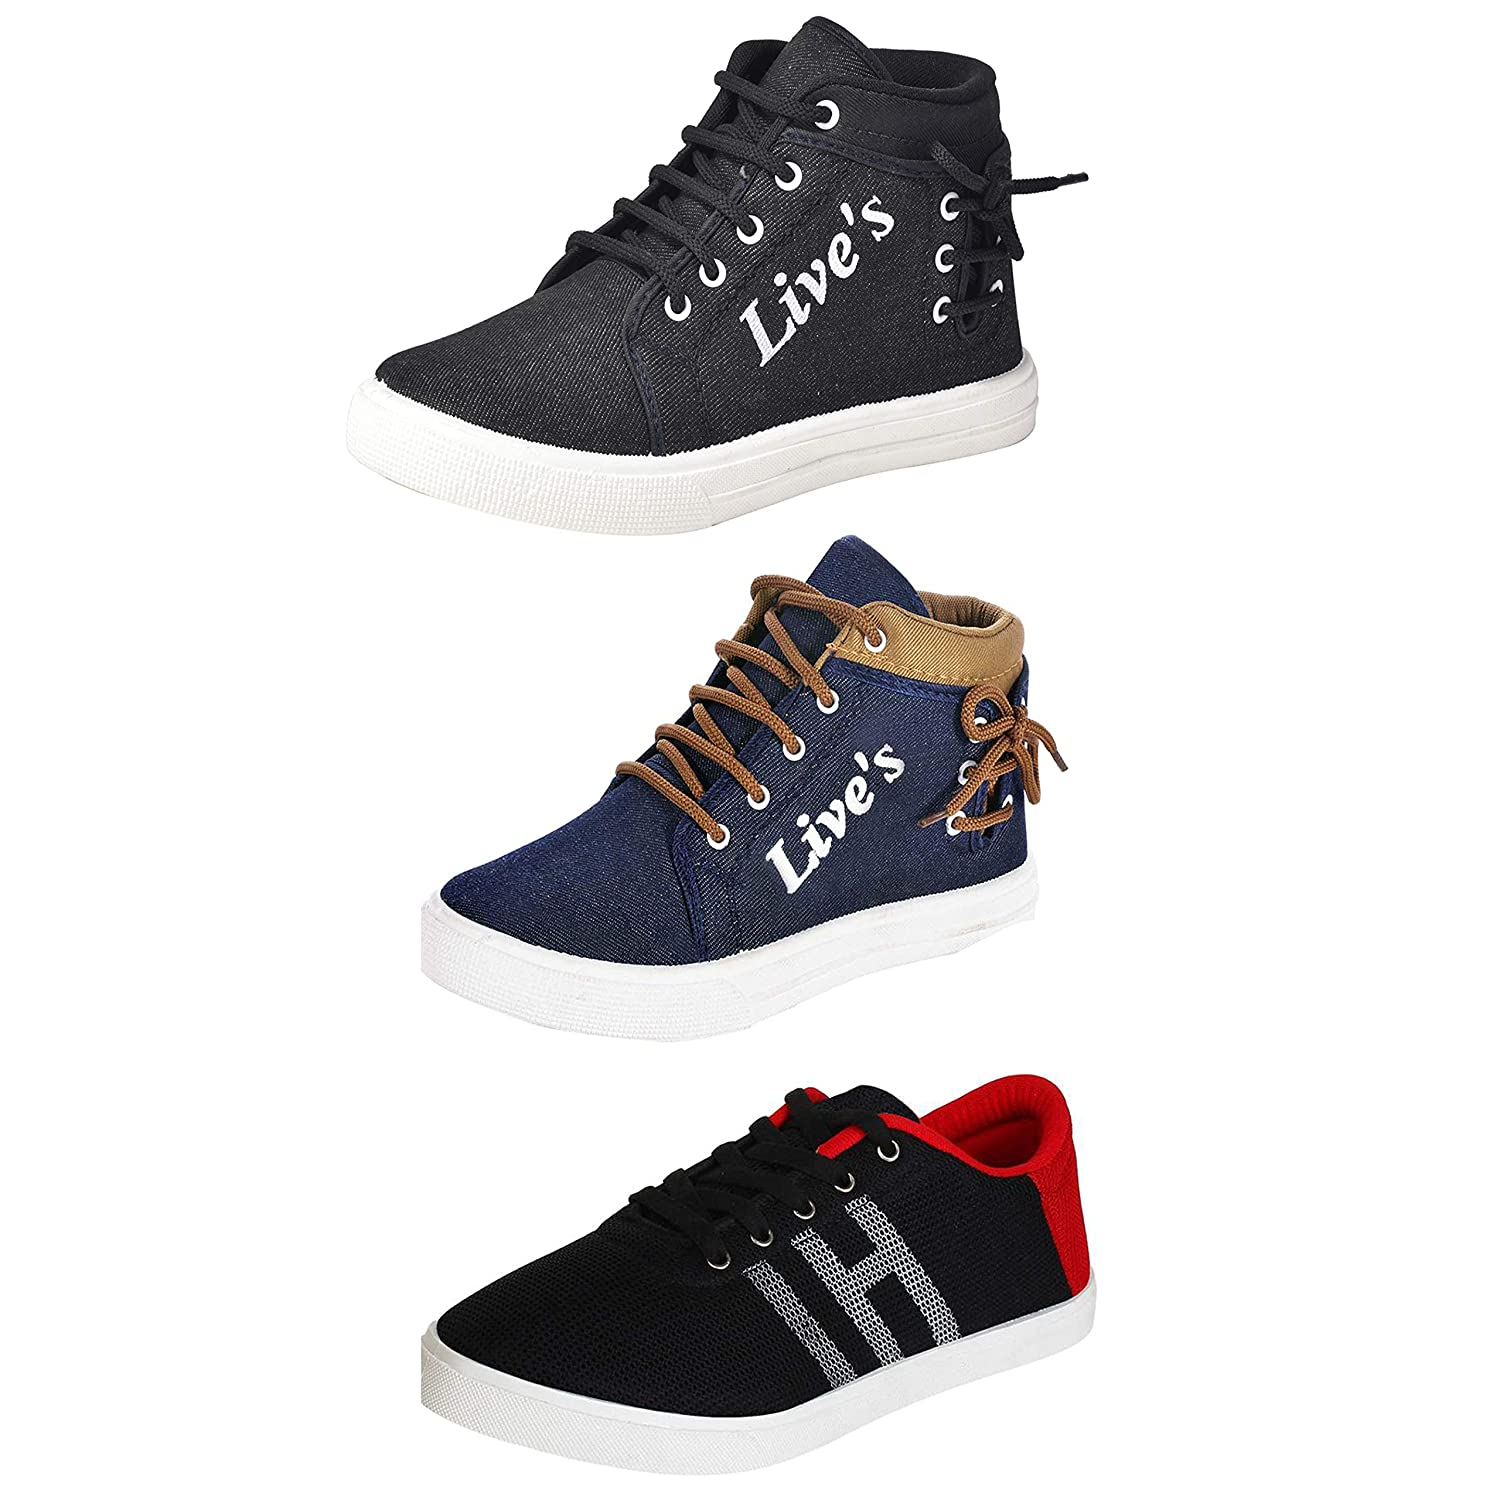 Combo Pack of 3 Sneakers Shoes